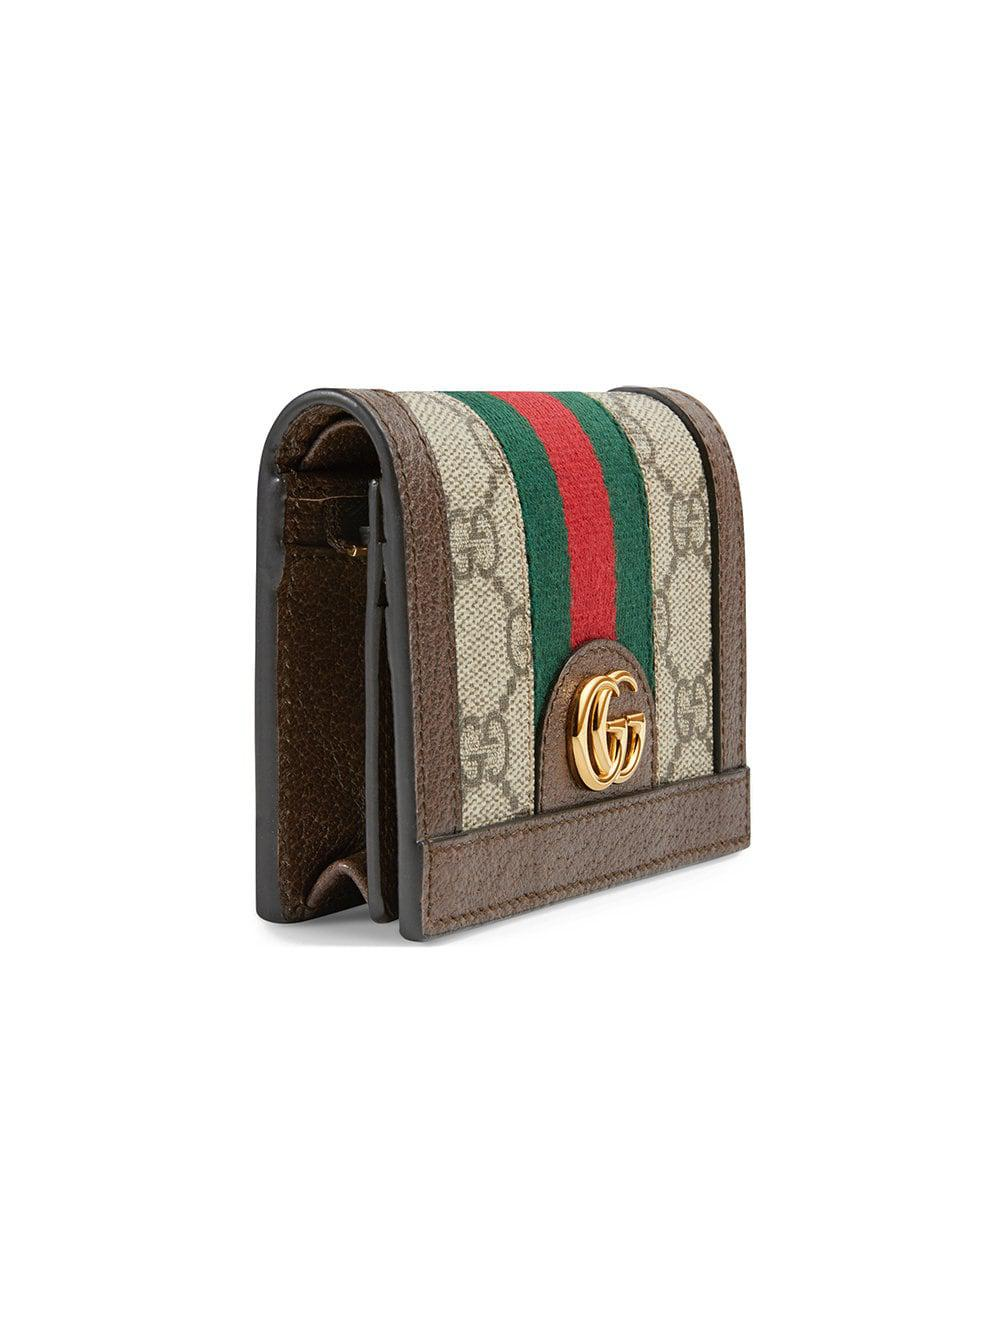 889c431c3a83 Gucci - Multicolor Ophidia GG Card Case - Lyst. View fullscreen